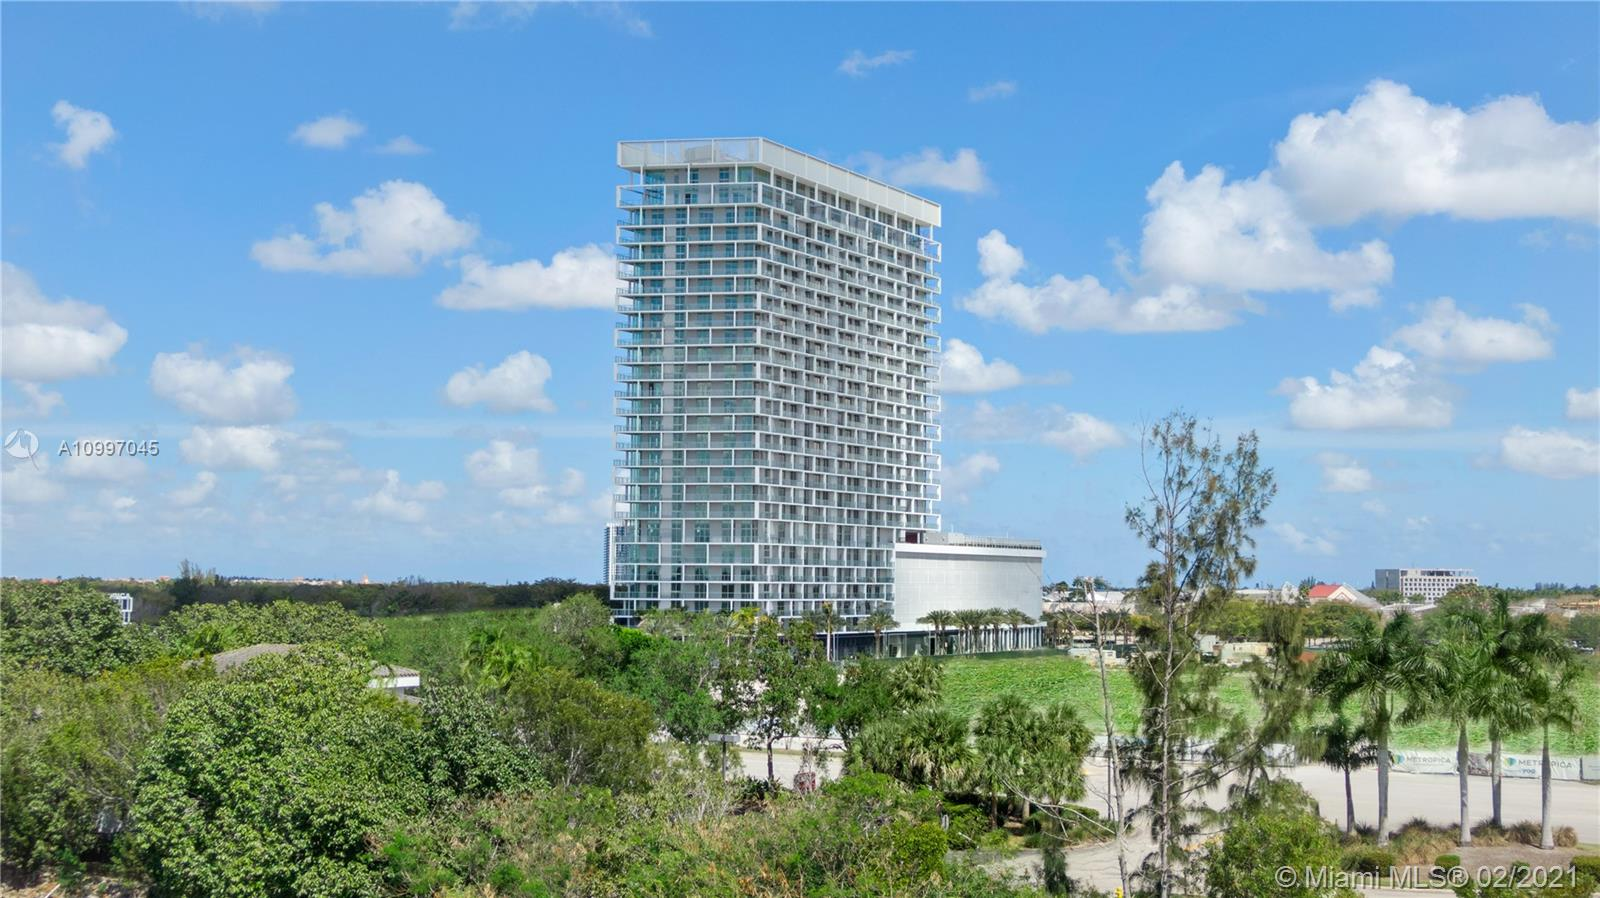 Metropica One #1908 - 2000 Metropica Way #1908, Sunrise, FL 33323